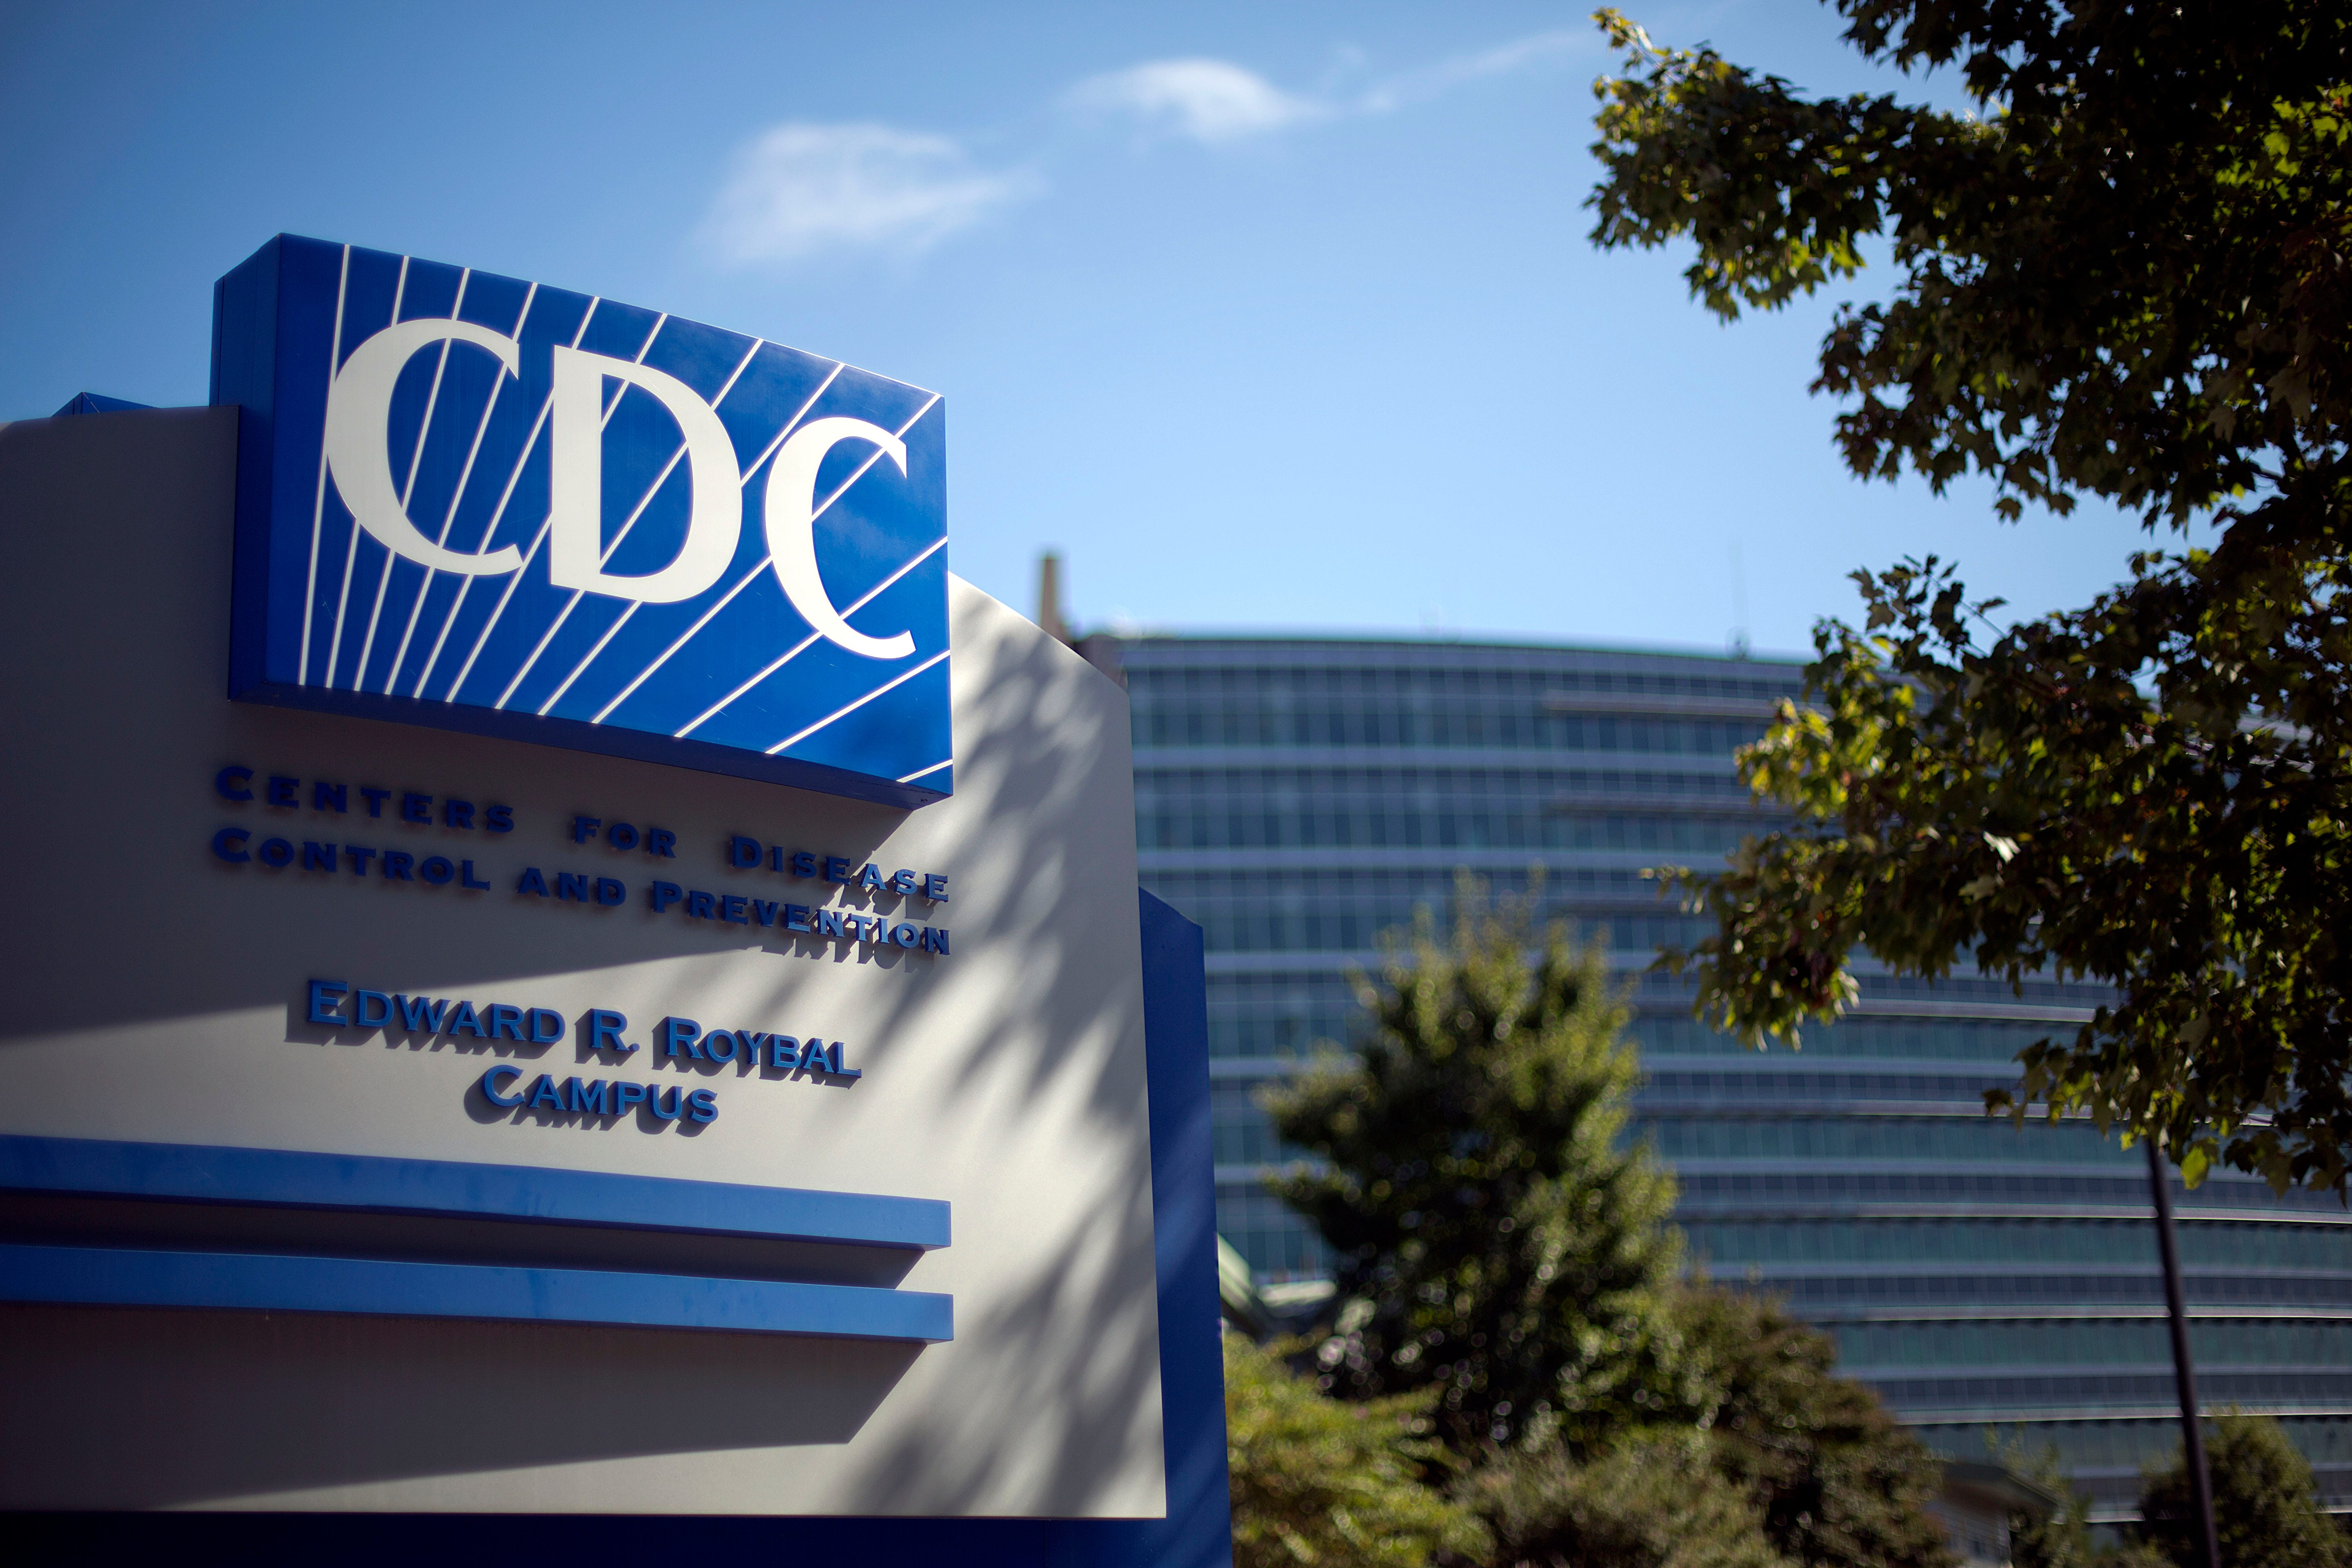 Salmonella outbreak linked to onions: Throw away onions if you don t know where they re from, CDC says